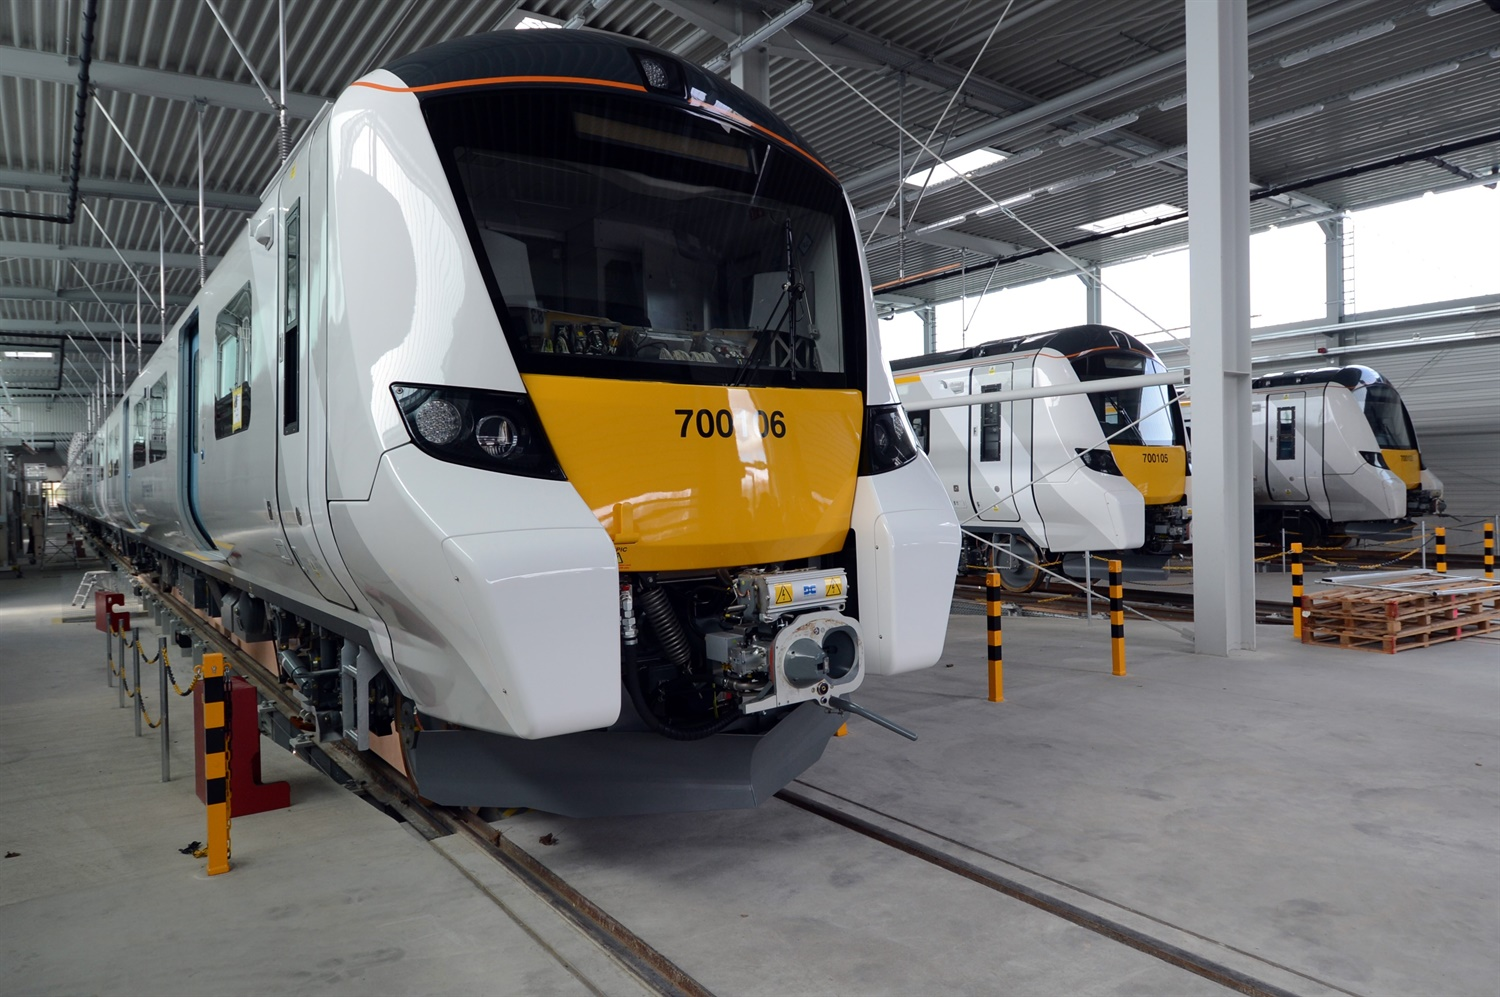 New photos of Thameslink Class 700 trains – construction 'on track'